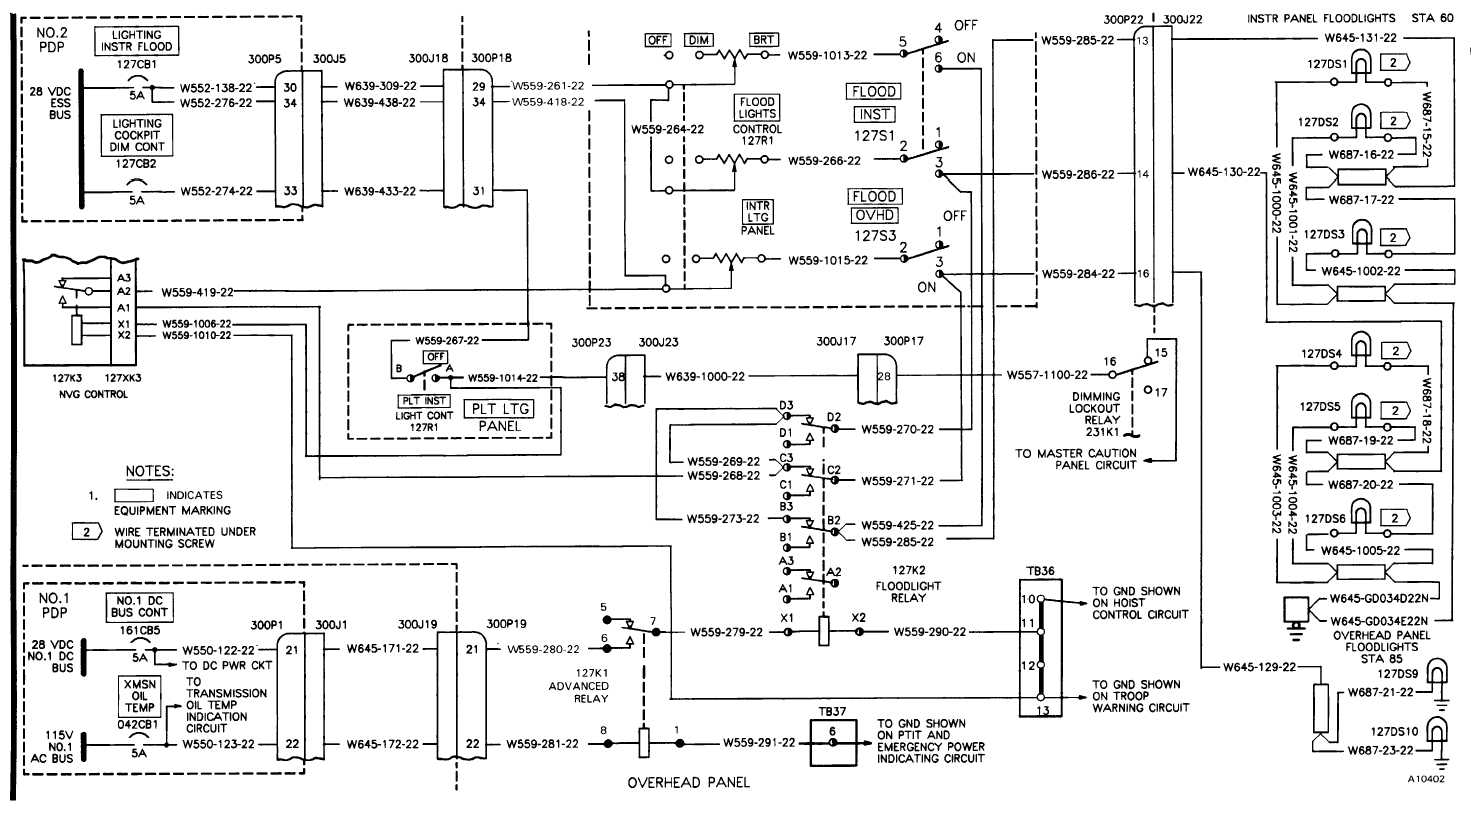 Secondary Cockpit Lights Wiring Diagram